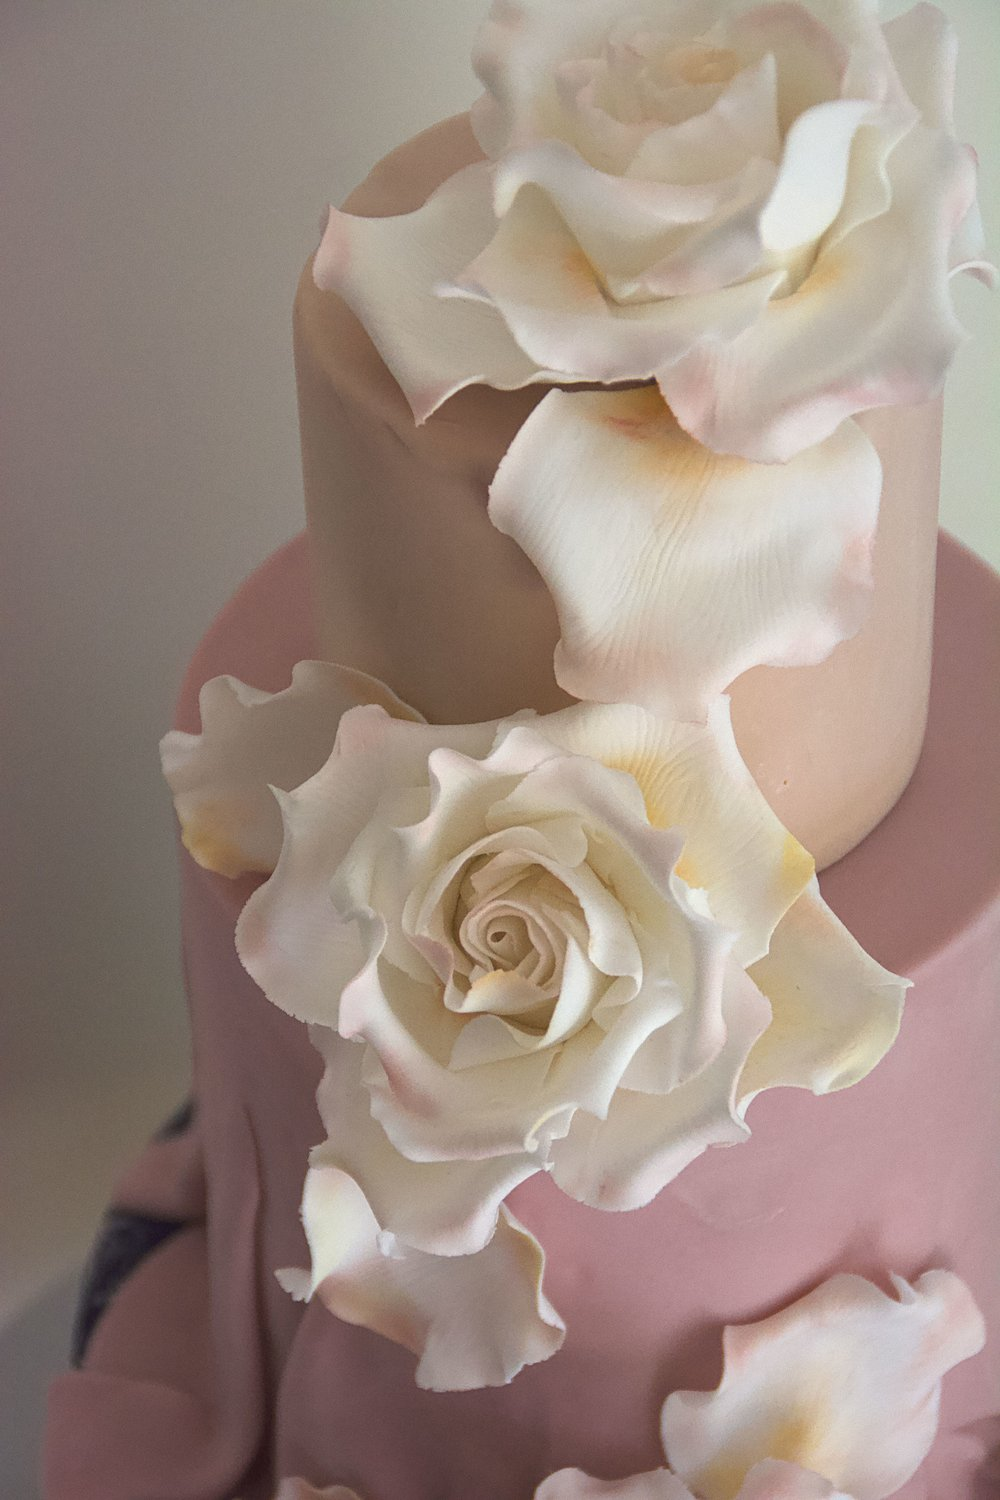 Vintage_sugar_rose_wedding_cake_details.jpg